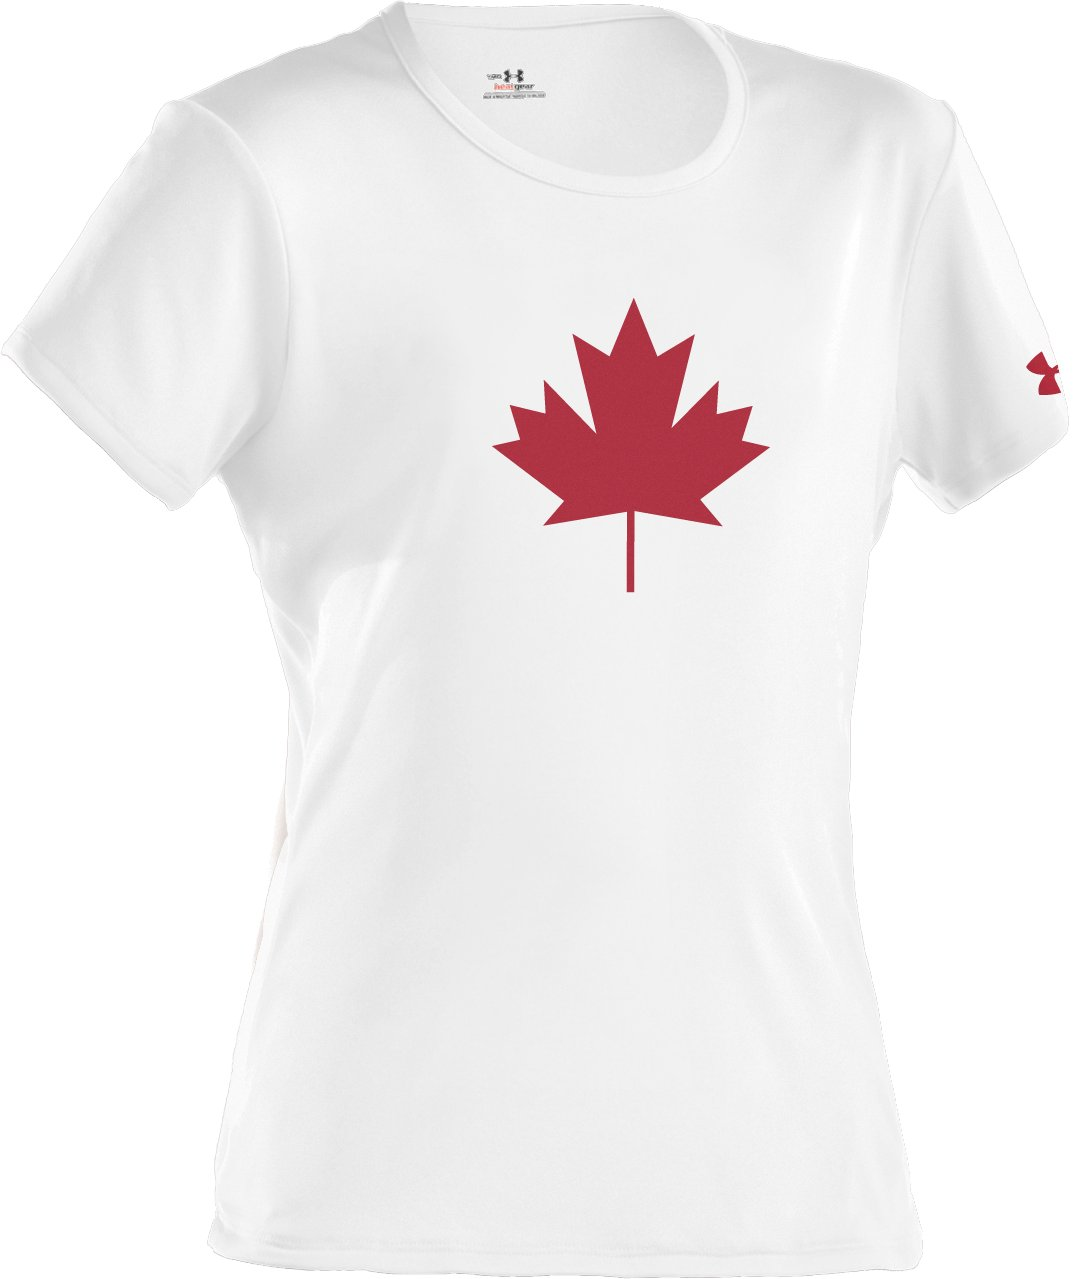 Girls' Canada Leaf T-Shirt, White